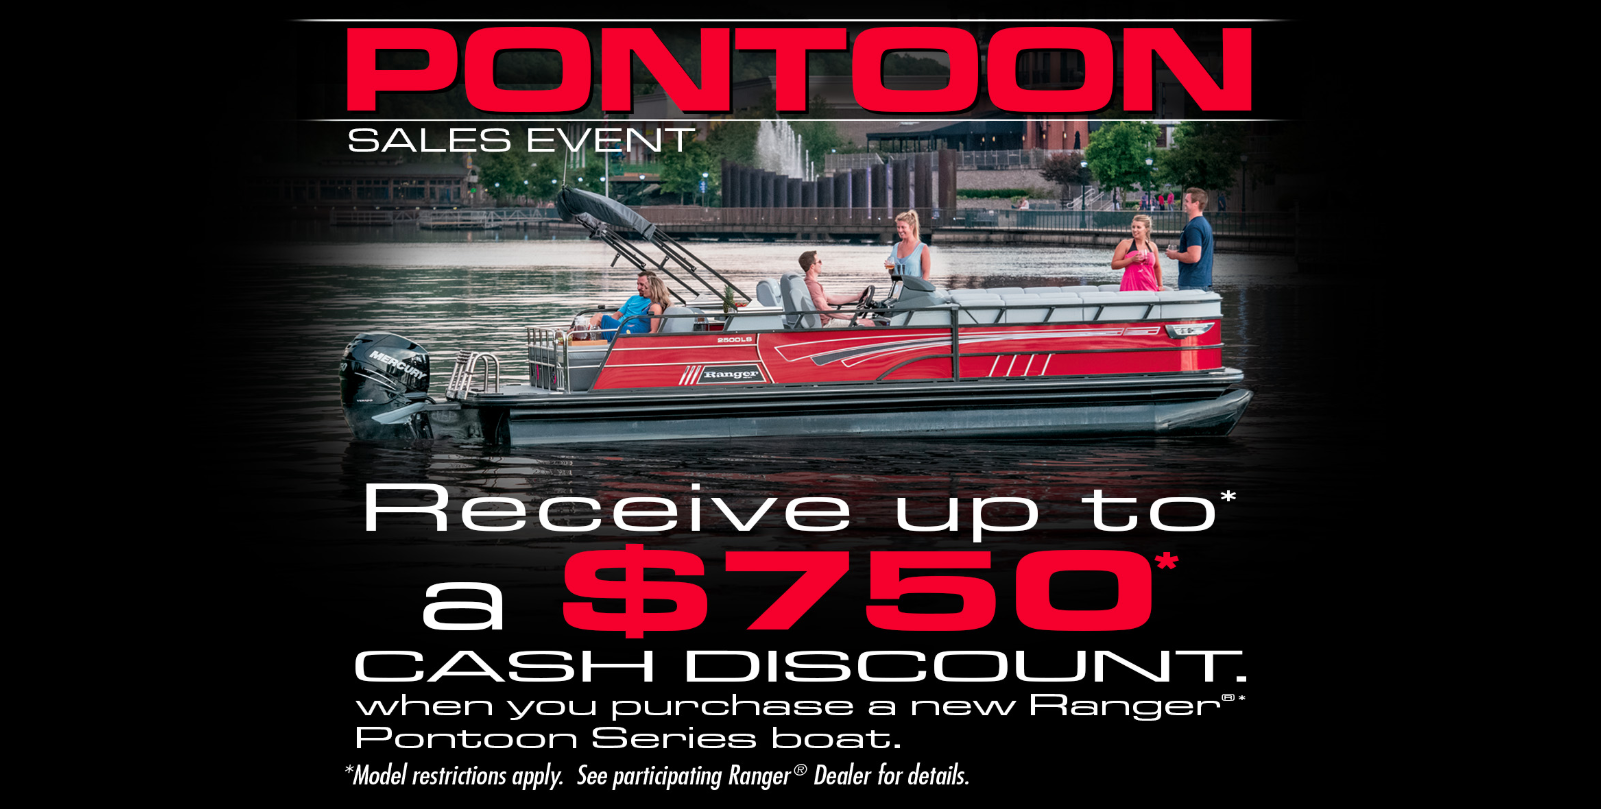 Ranger Pontoon Sales Event 2020